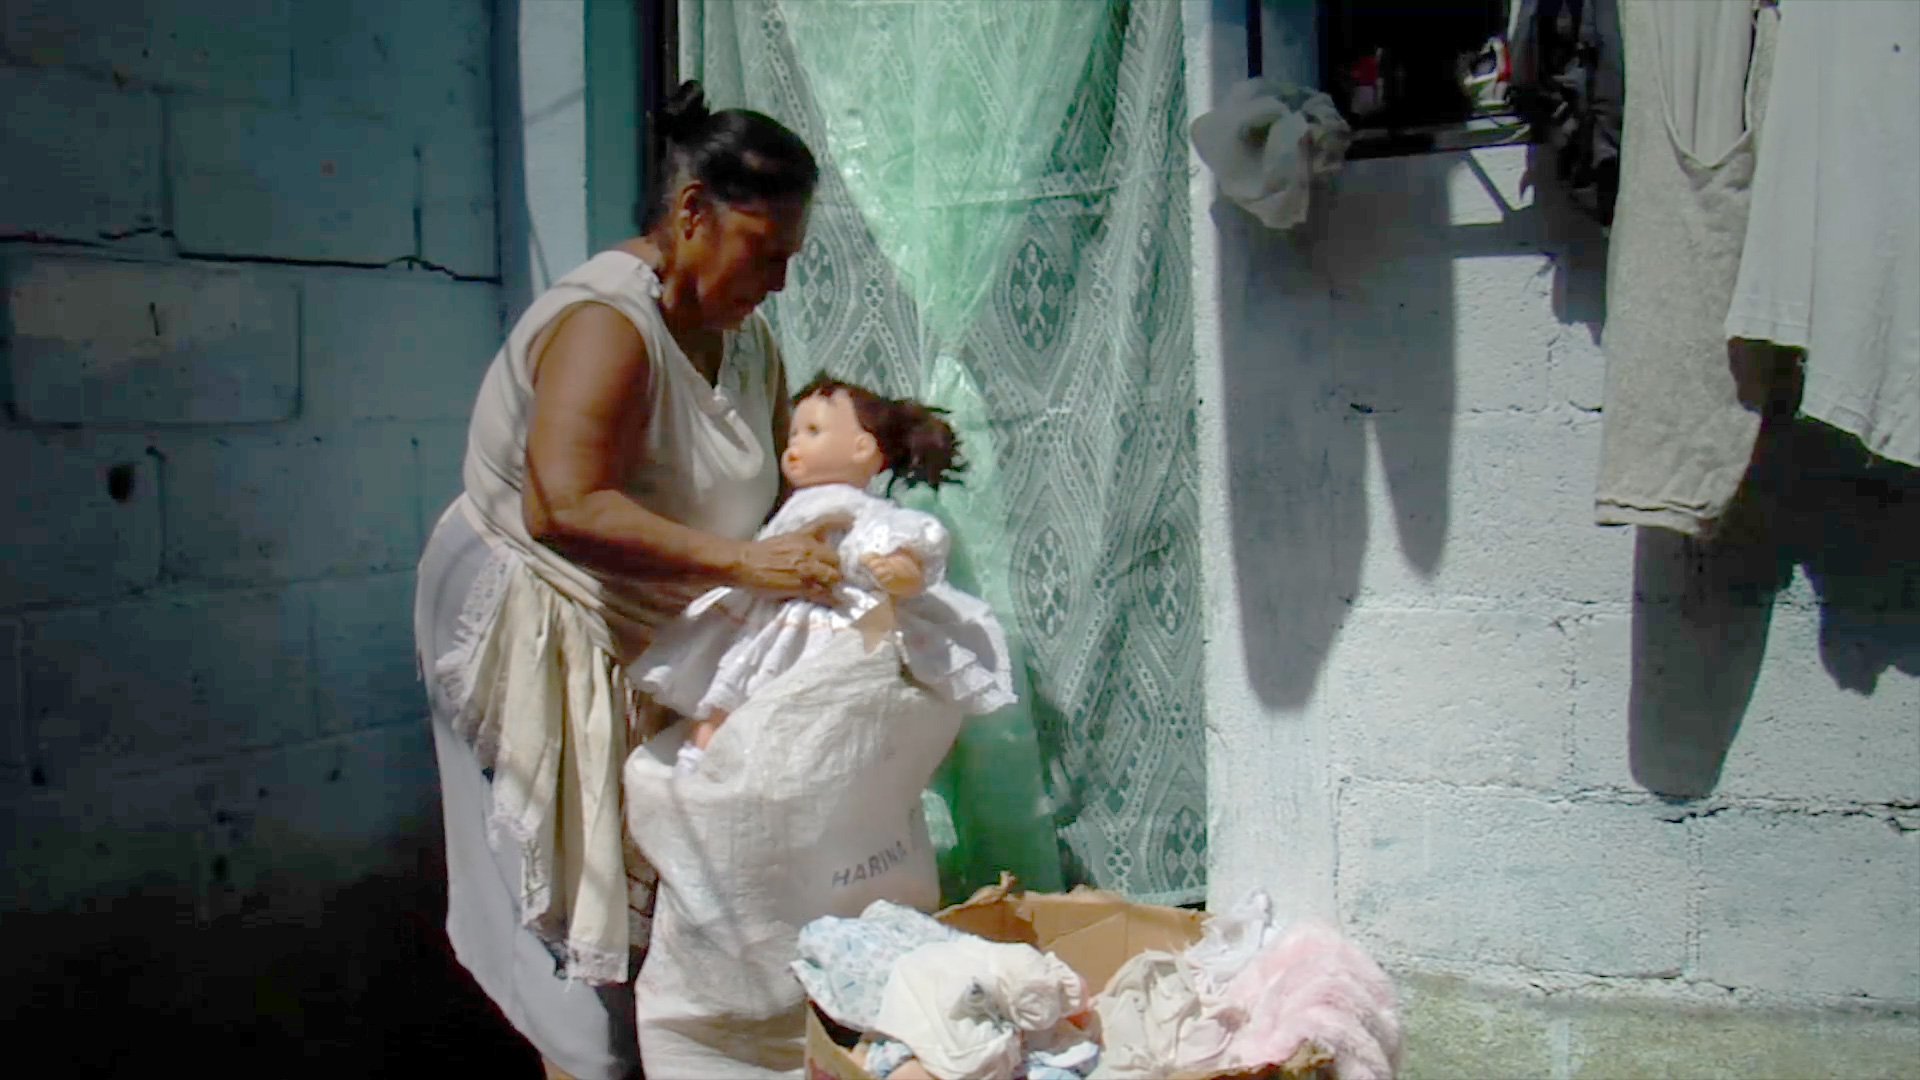 Taking the doll to the market.